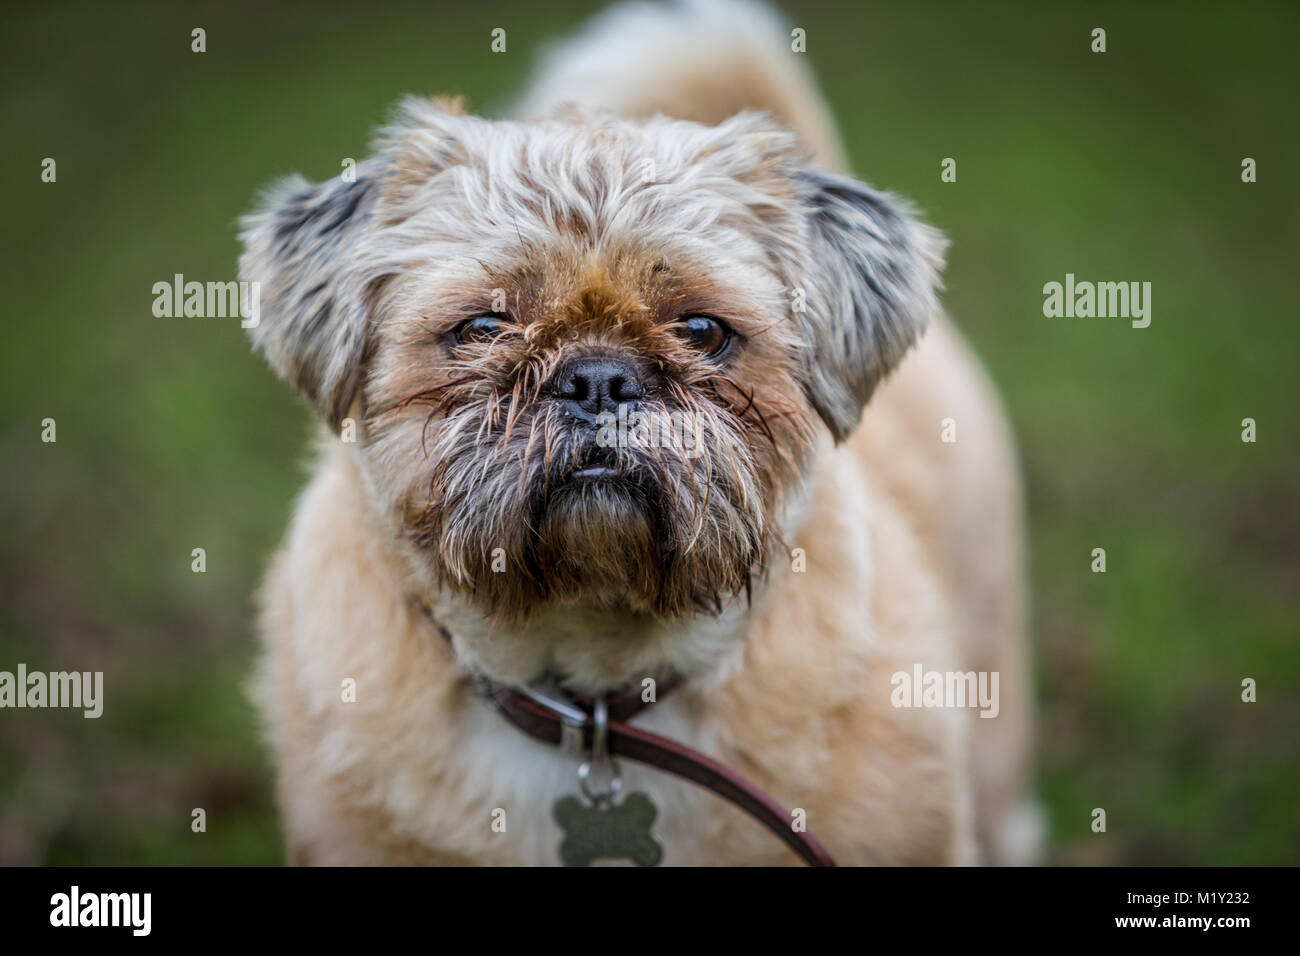 Pug Shih Tzu Cross Puppy Outside In Park Stock Photo 173312694 Alamy